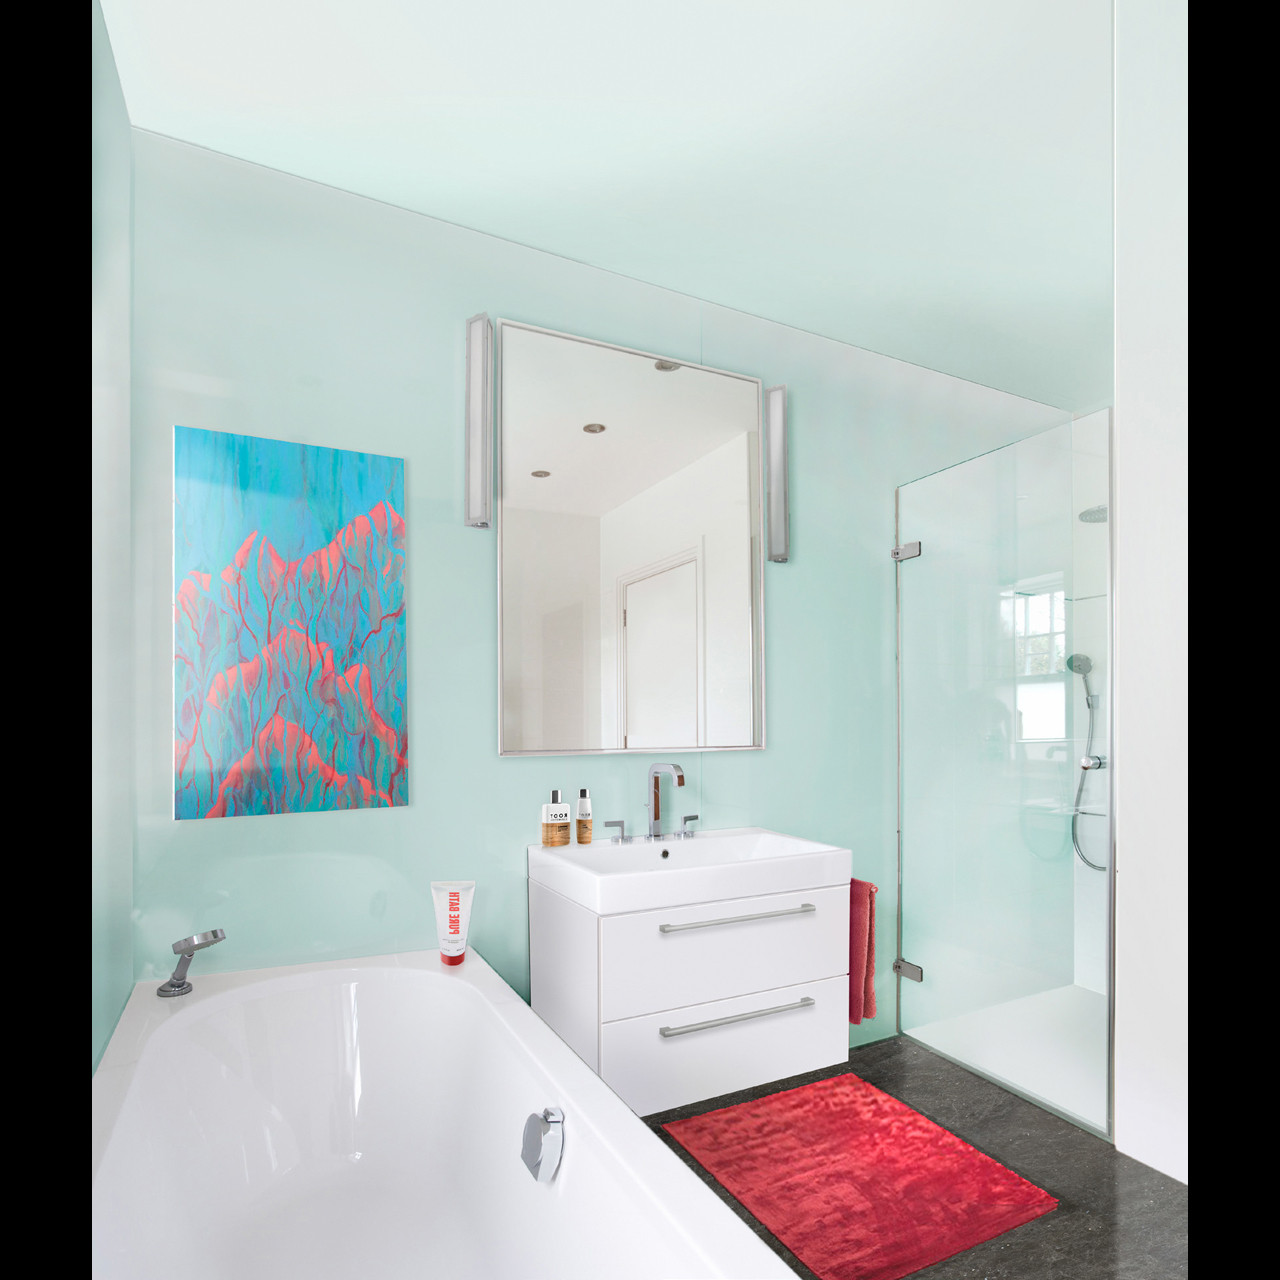 Multipanel Reflect Aqua 2440mm x 1220mm Bathroom Wall Panel